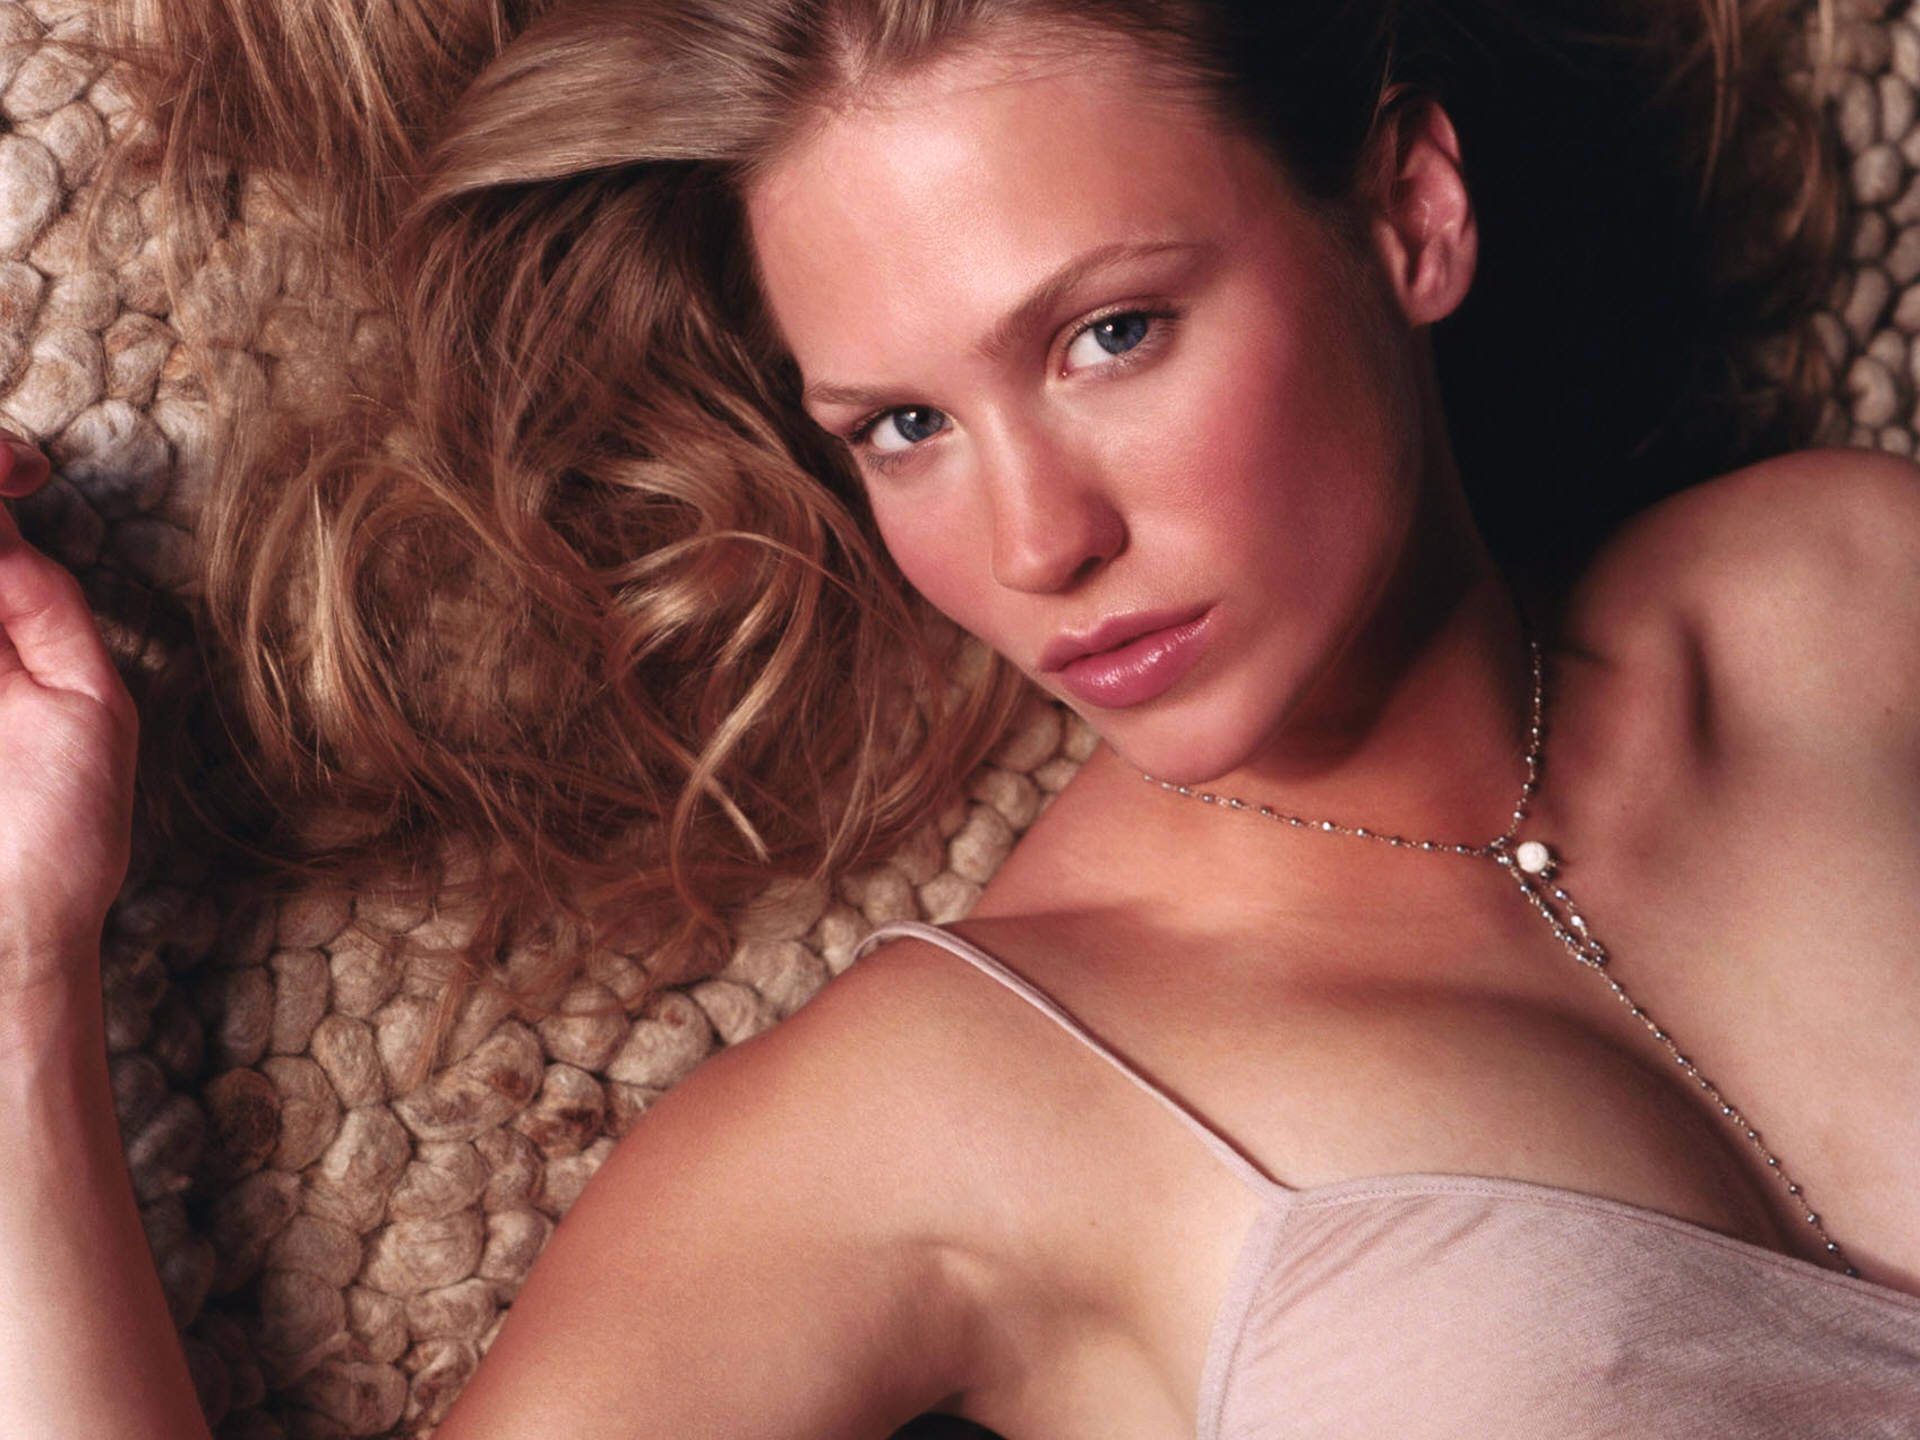 3 January Jones wallpapers for your PC, mobile phone, iPad, iPhone.